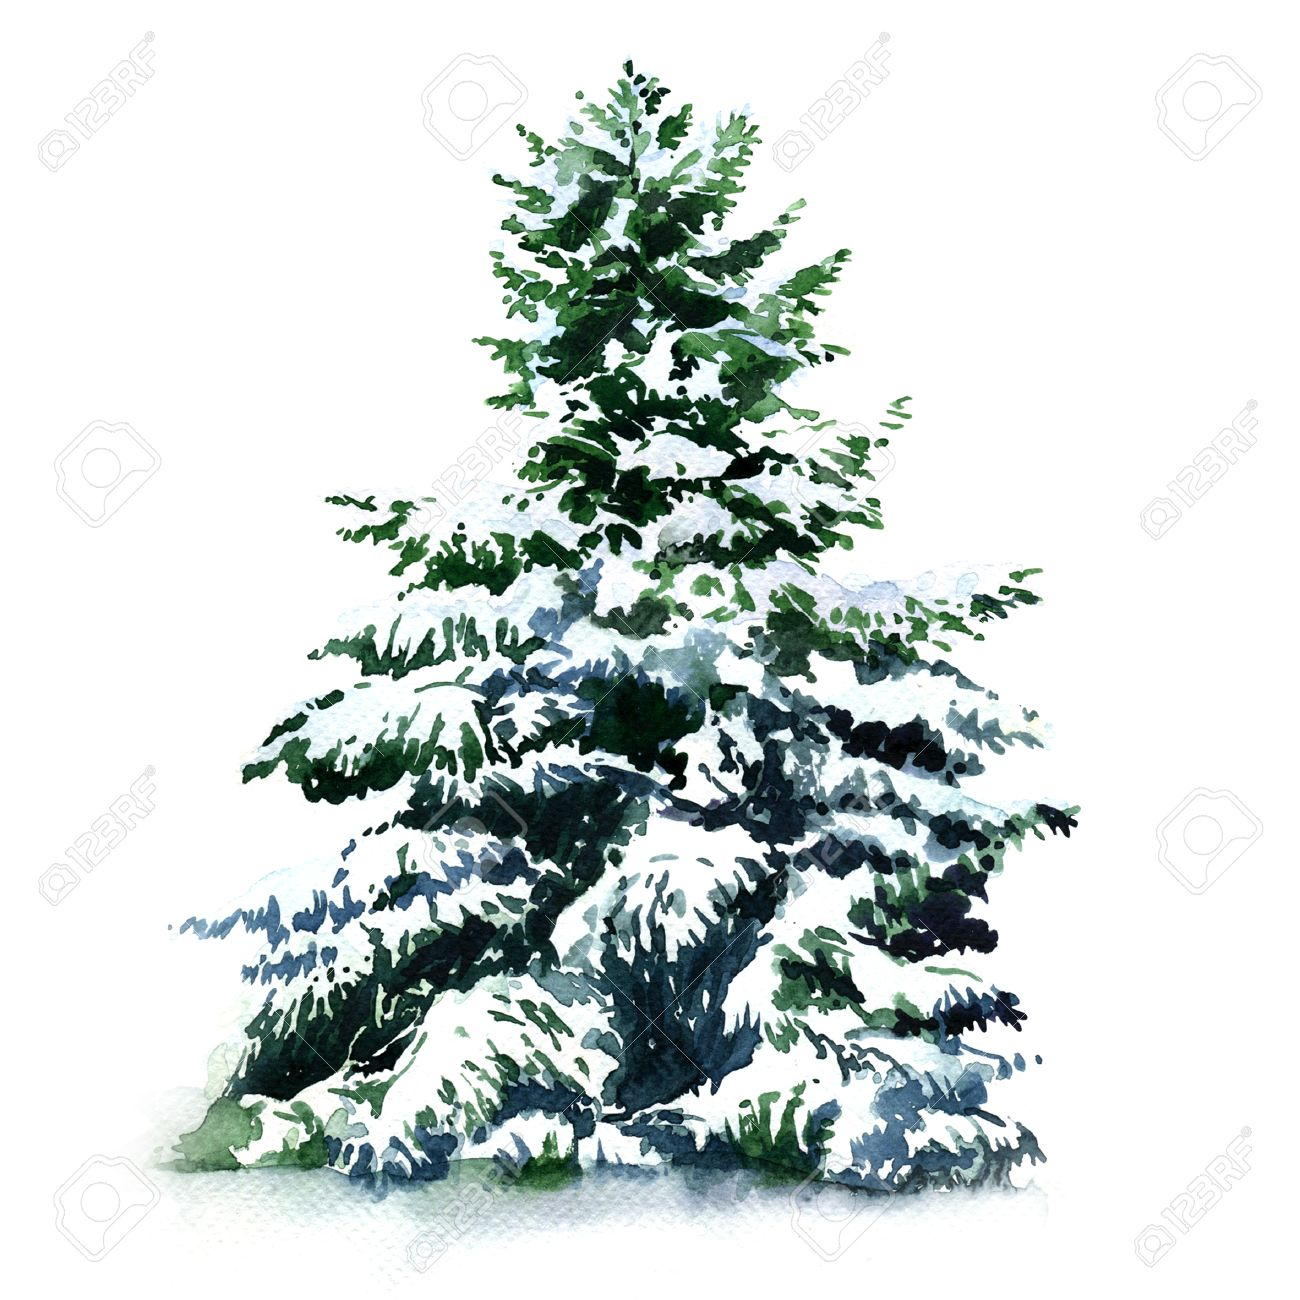 Christmas Tree Covered Snow In Winter Isolated, Watercolor ...